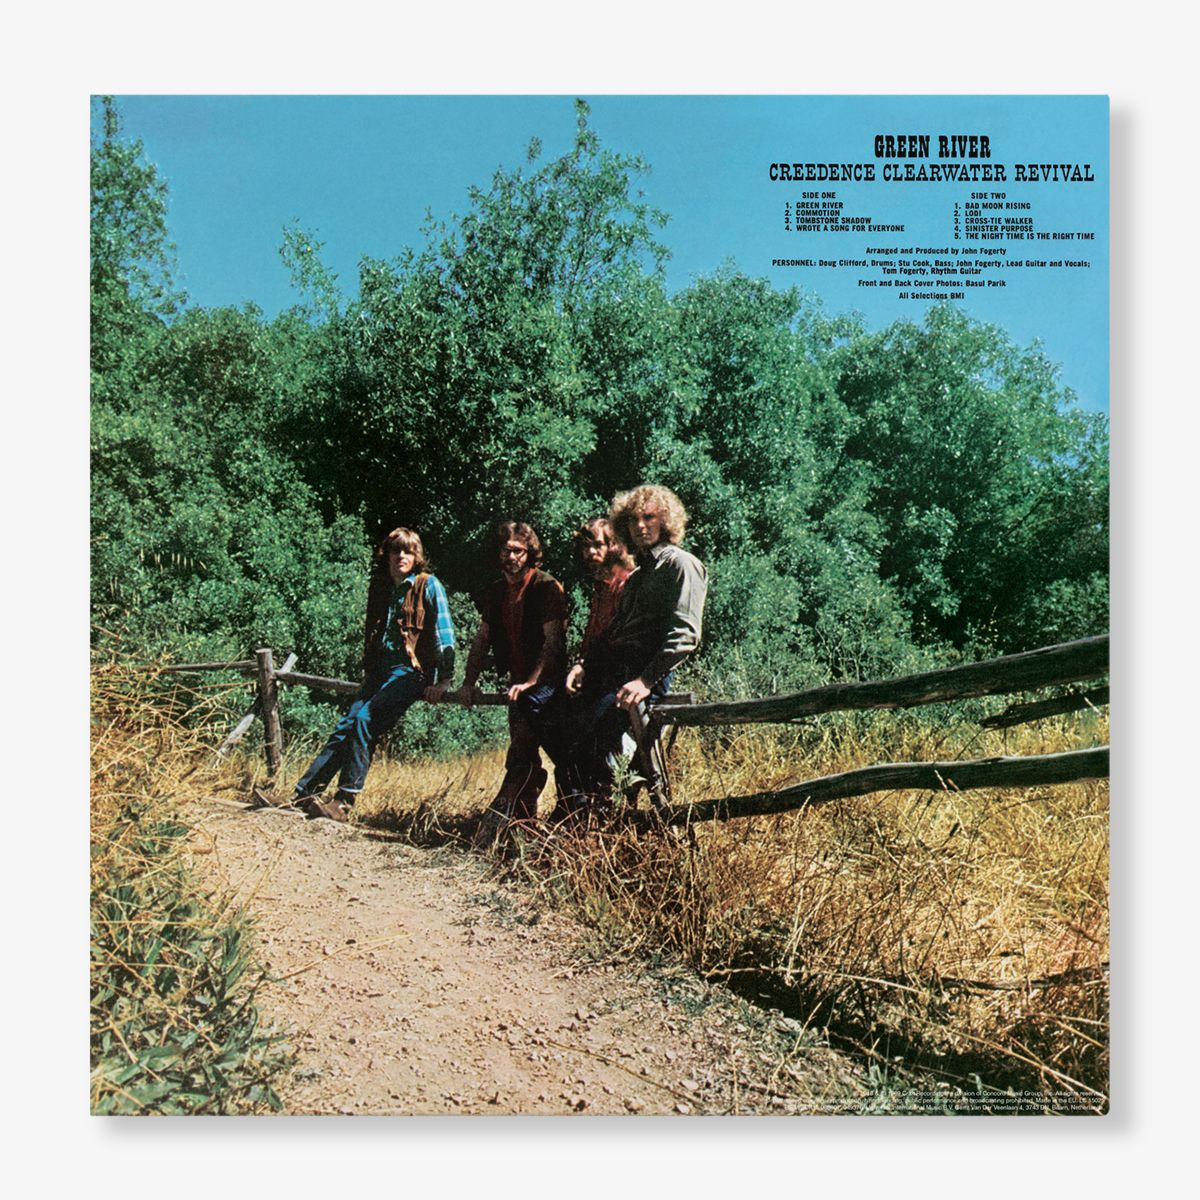 Creedence Clearwater Revival - Green River (Half-Speed Master LP)